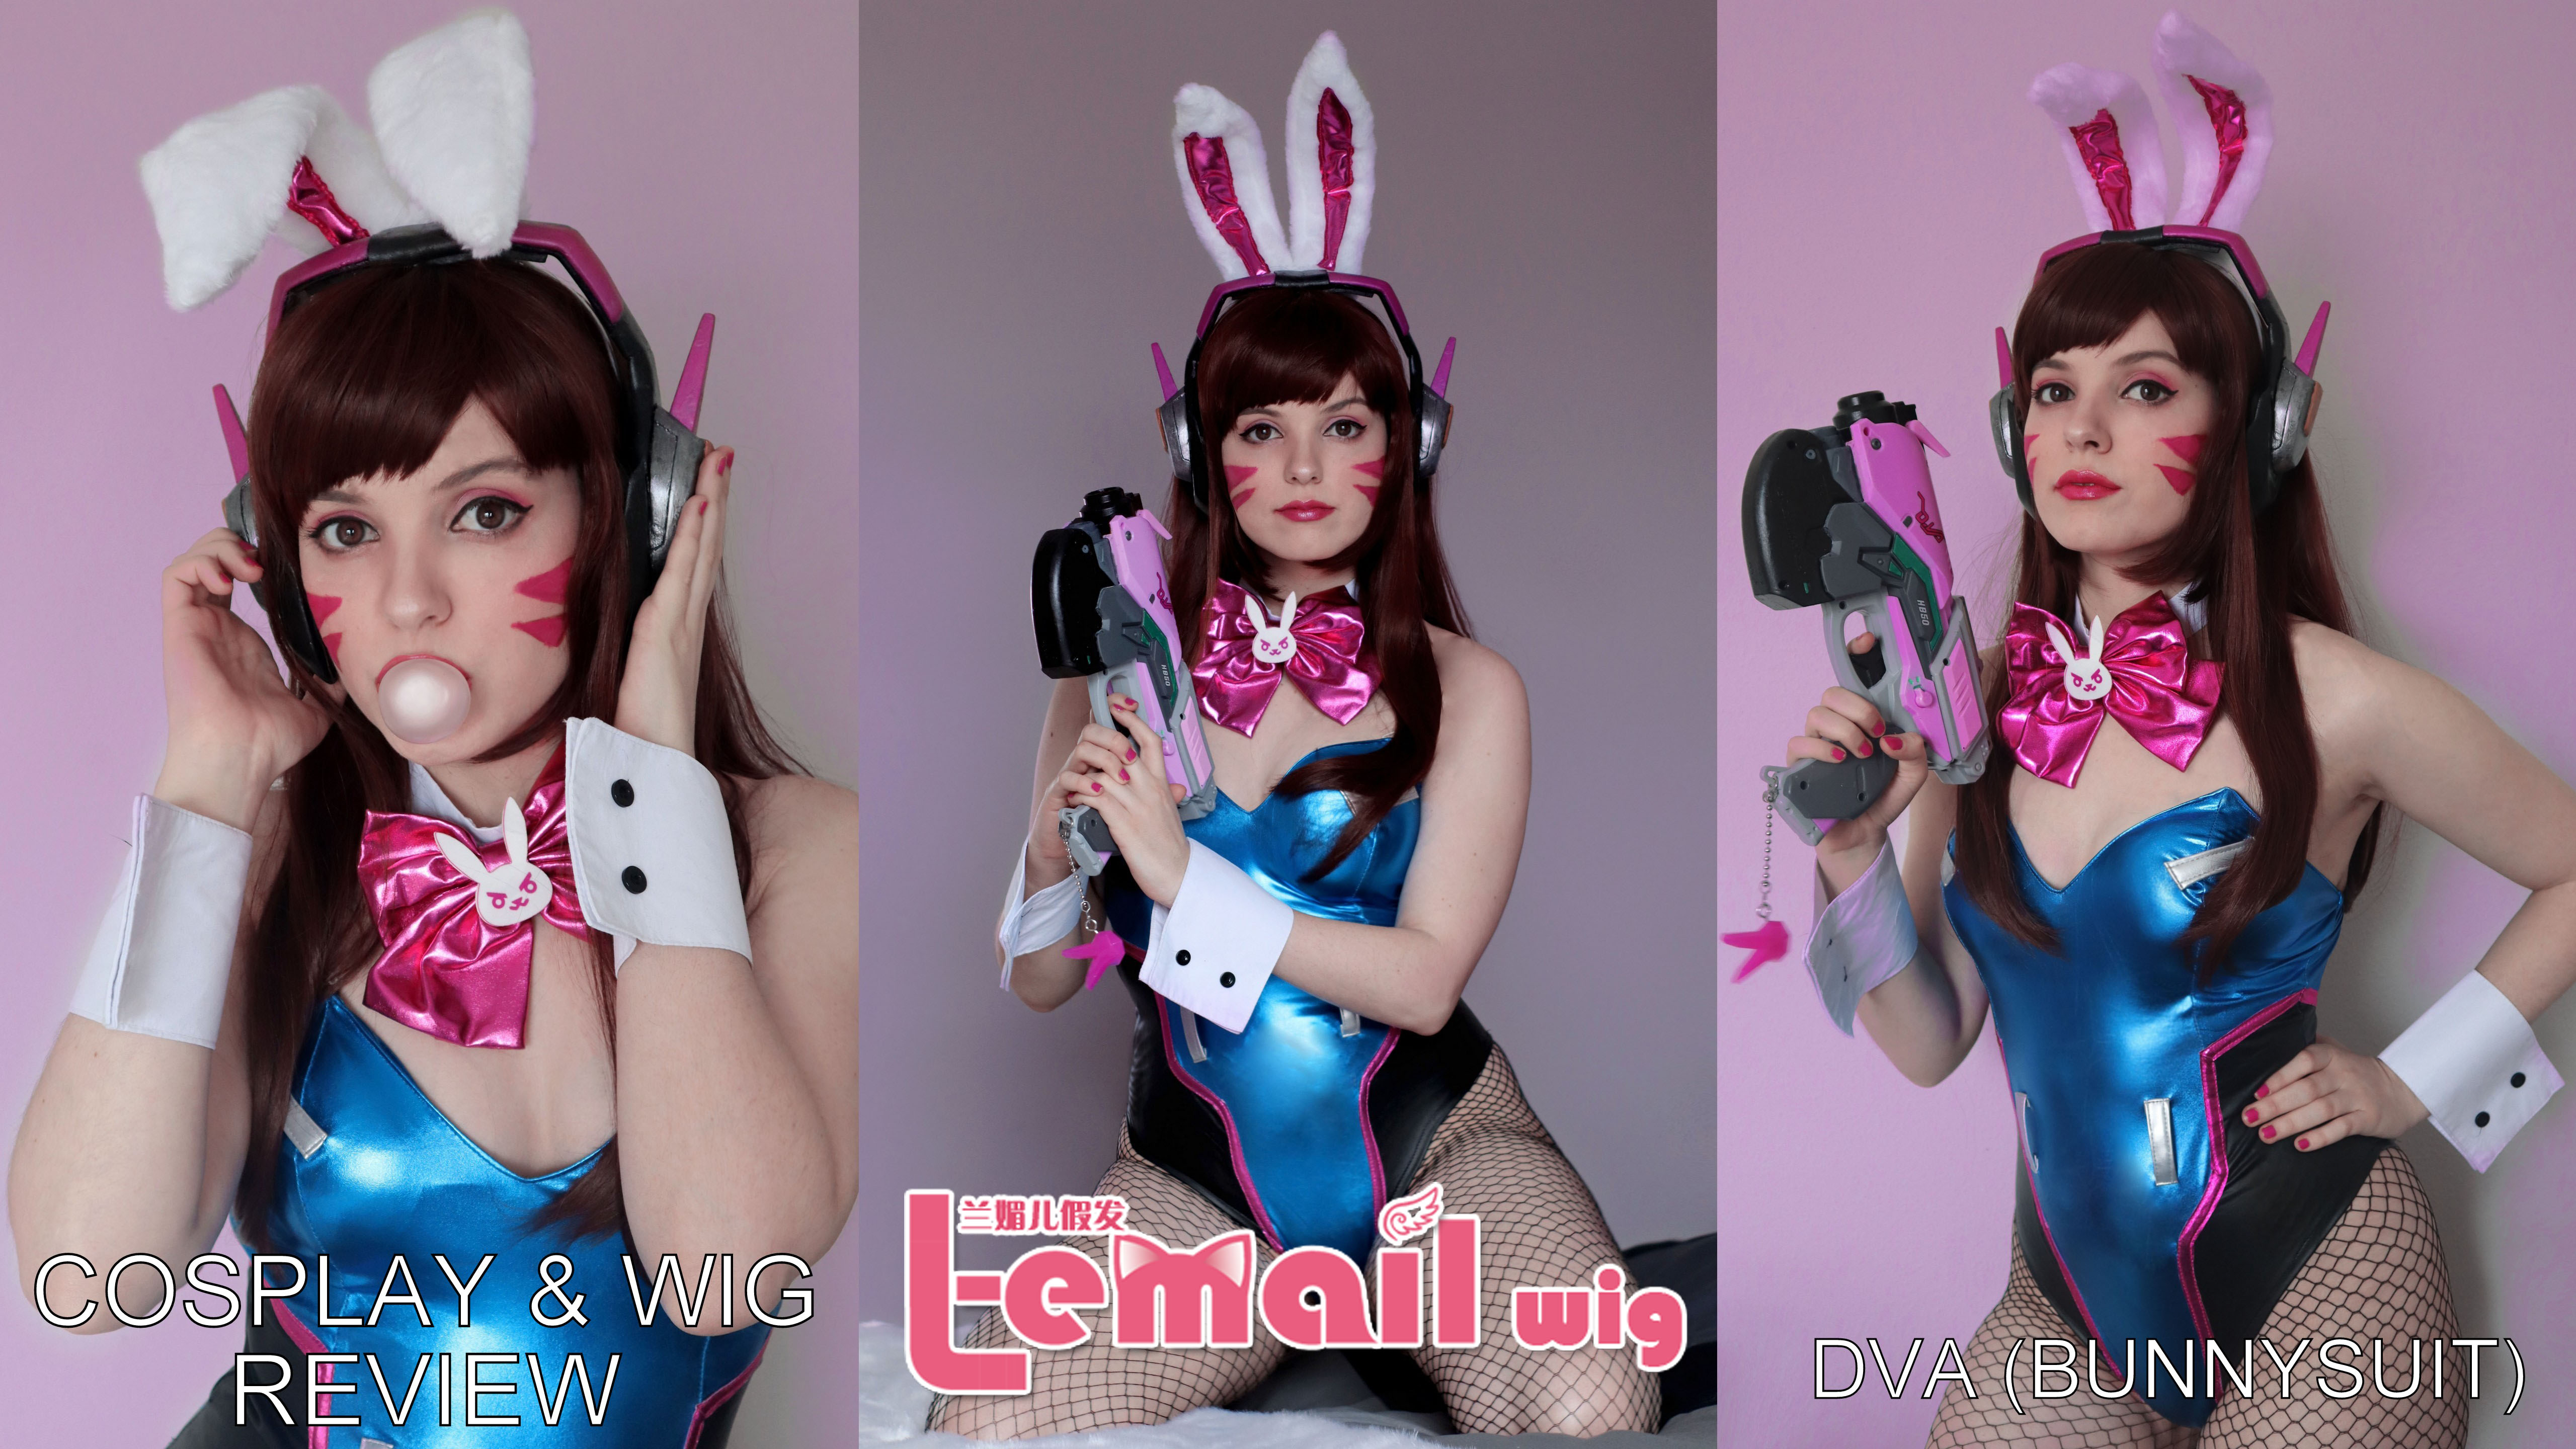 Cosplay & wig review: Dva (bunnysuit) from L-email wigs.